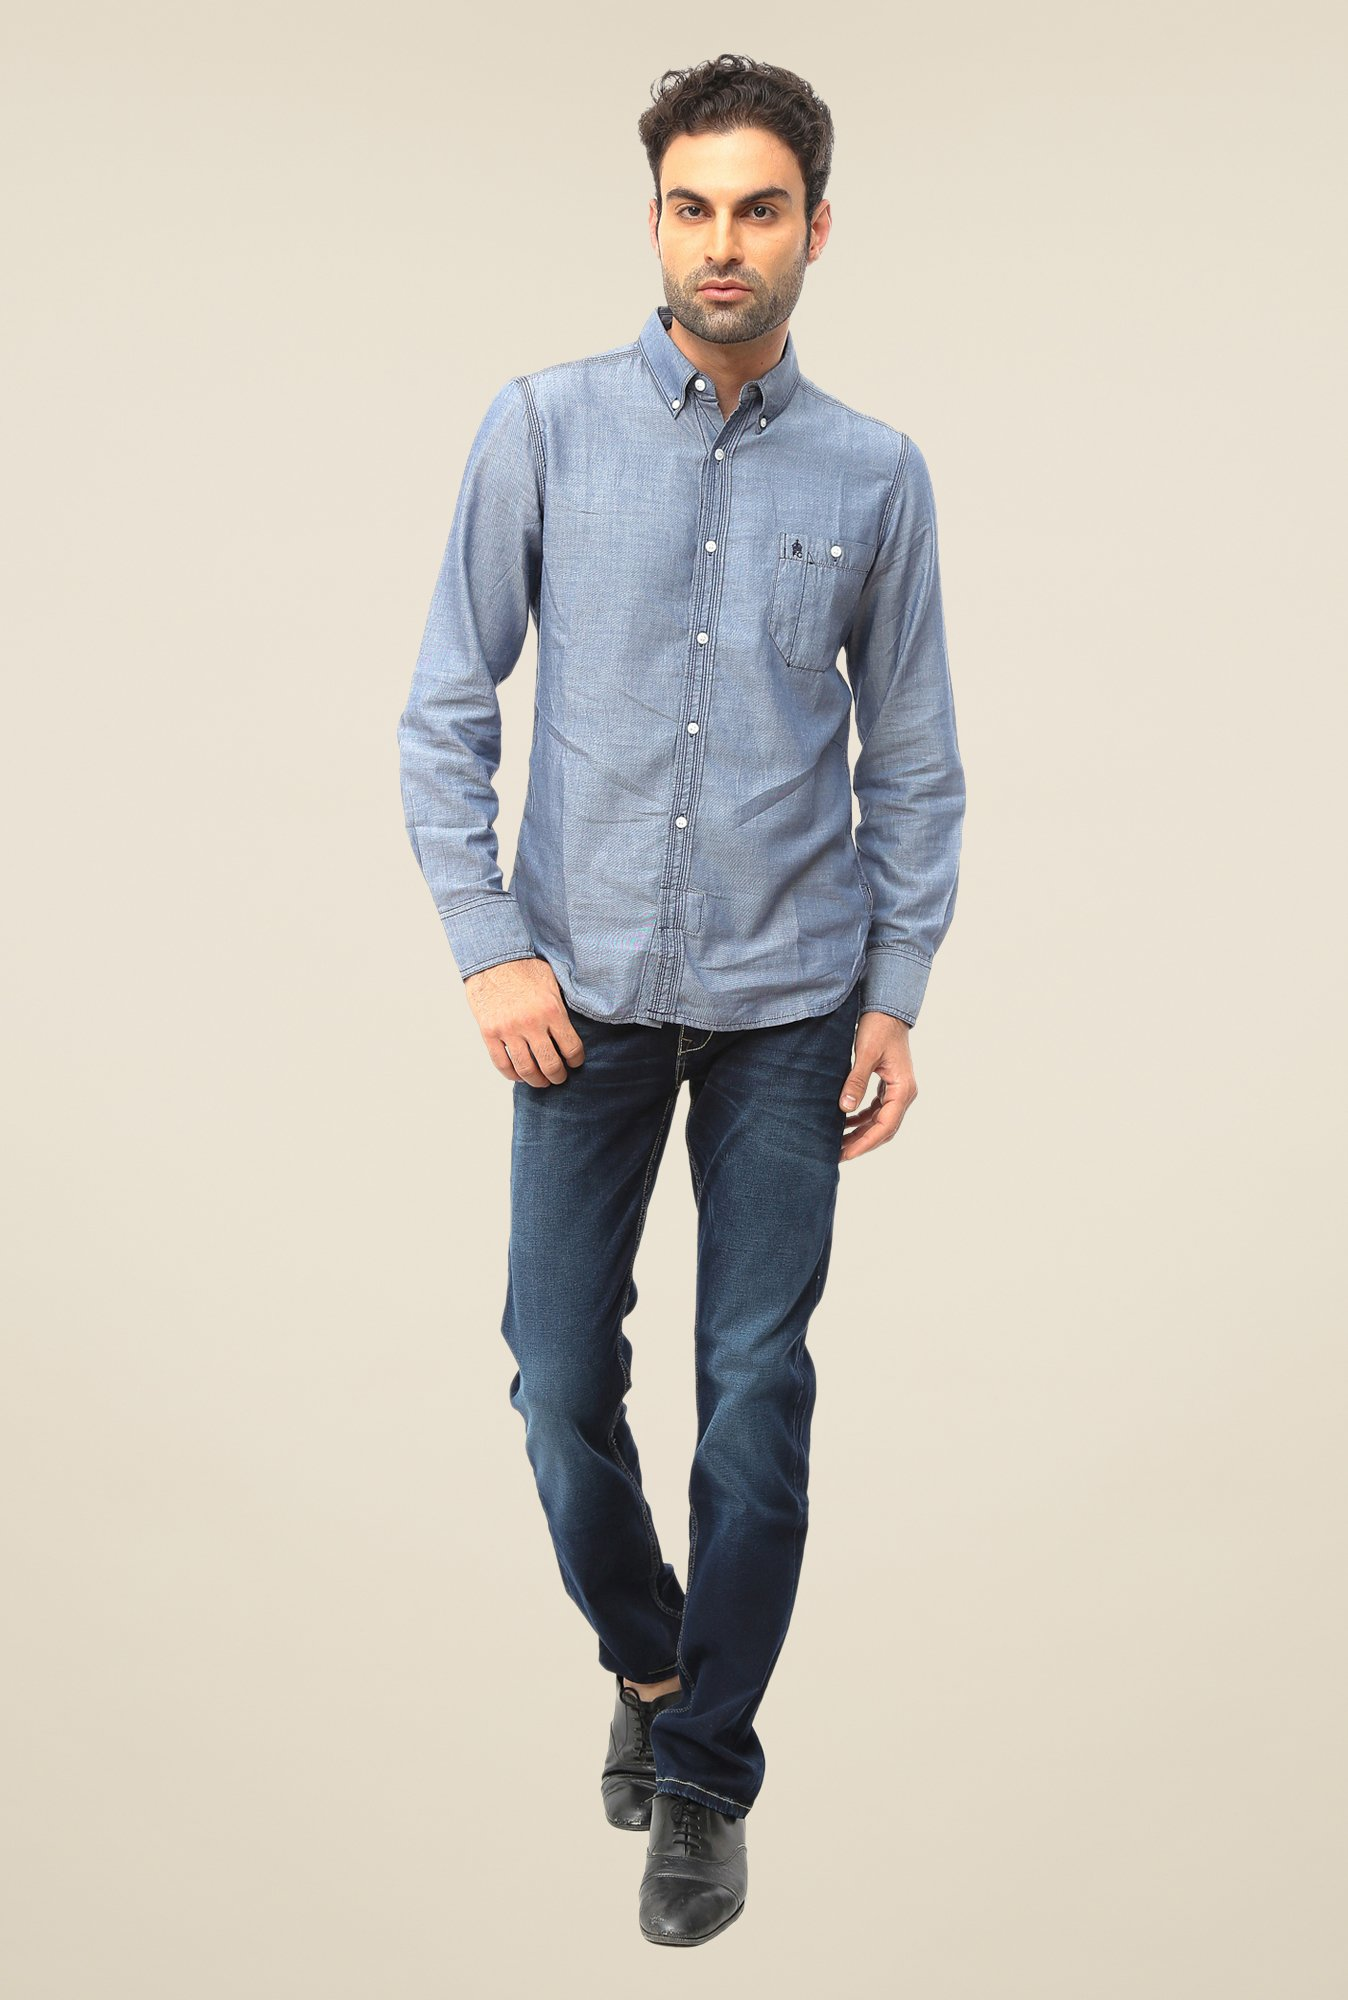 FCUK Grey Solid Shirt